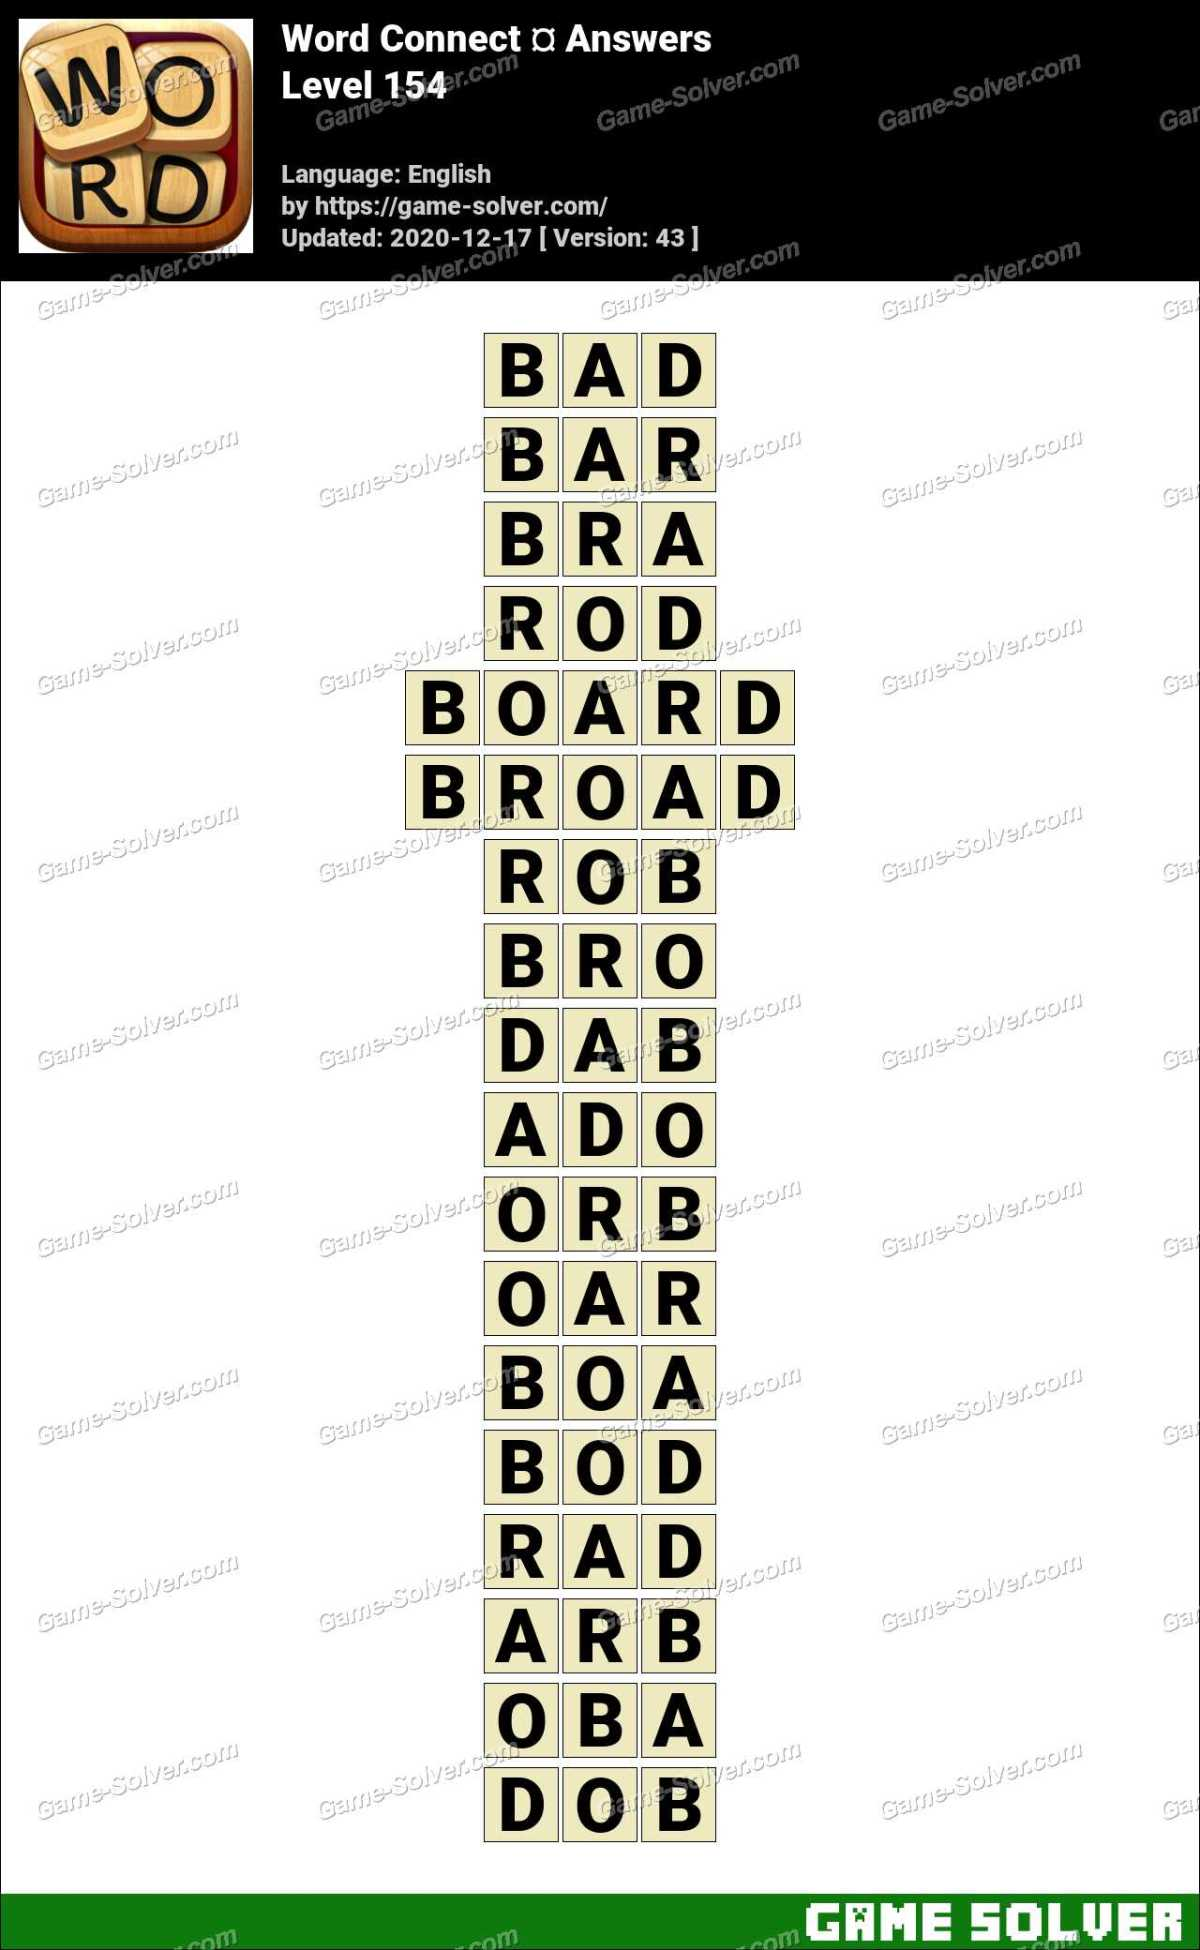 Word Connect Level 154 Answers